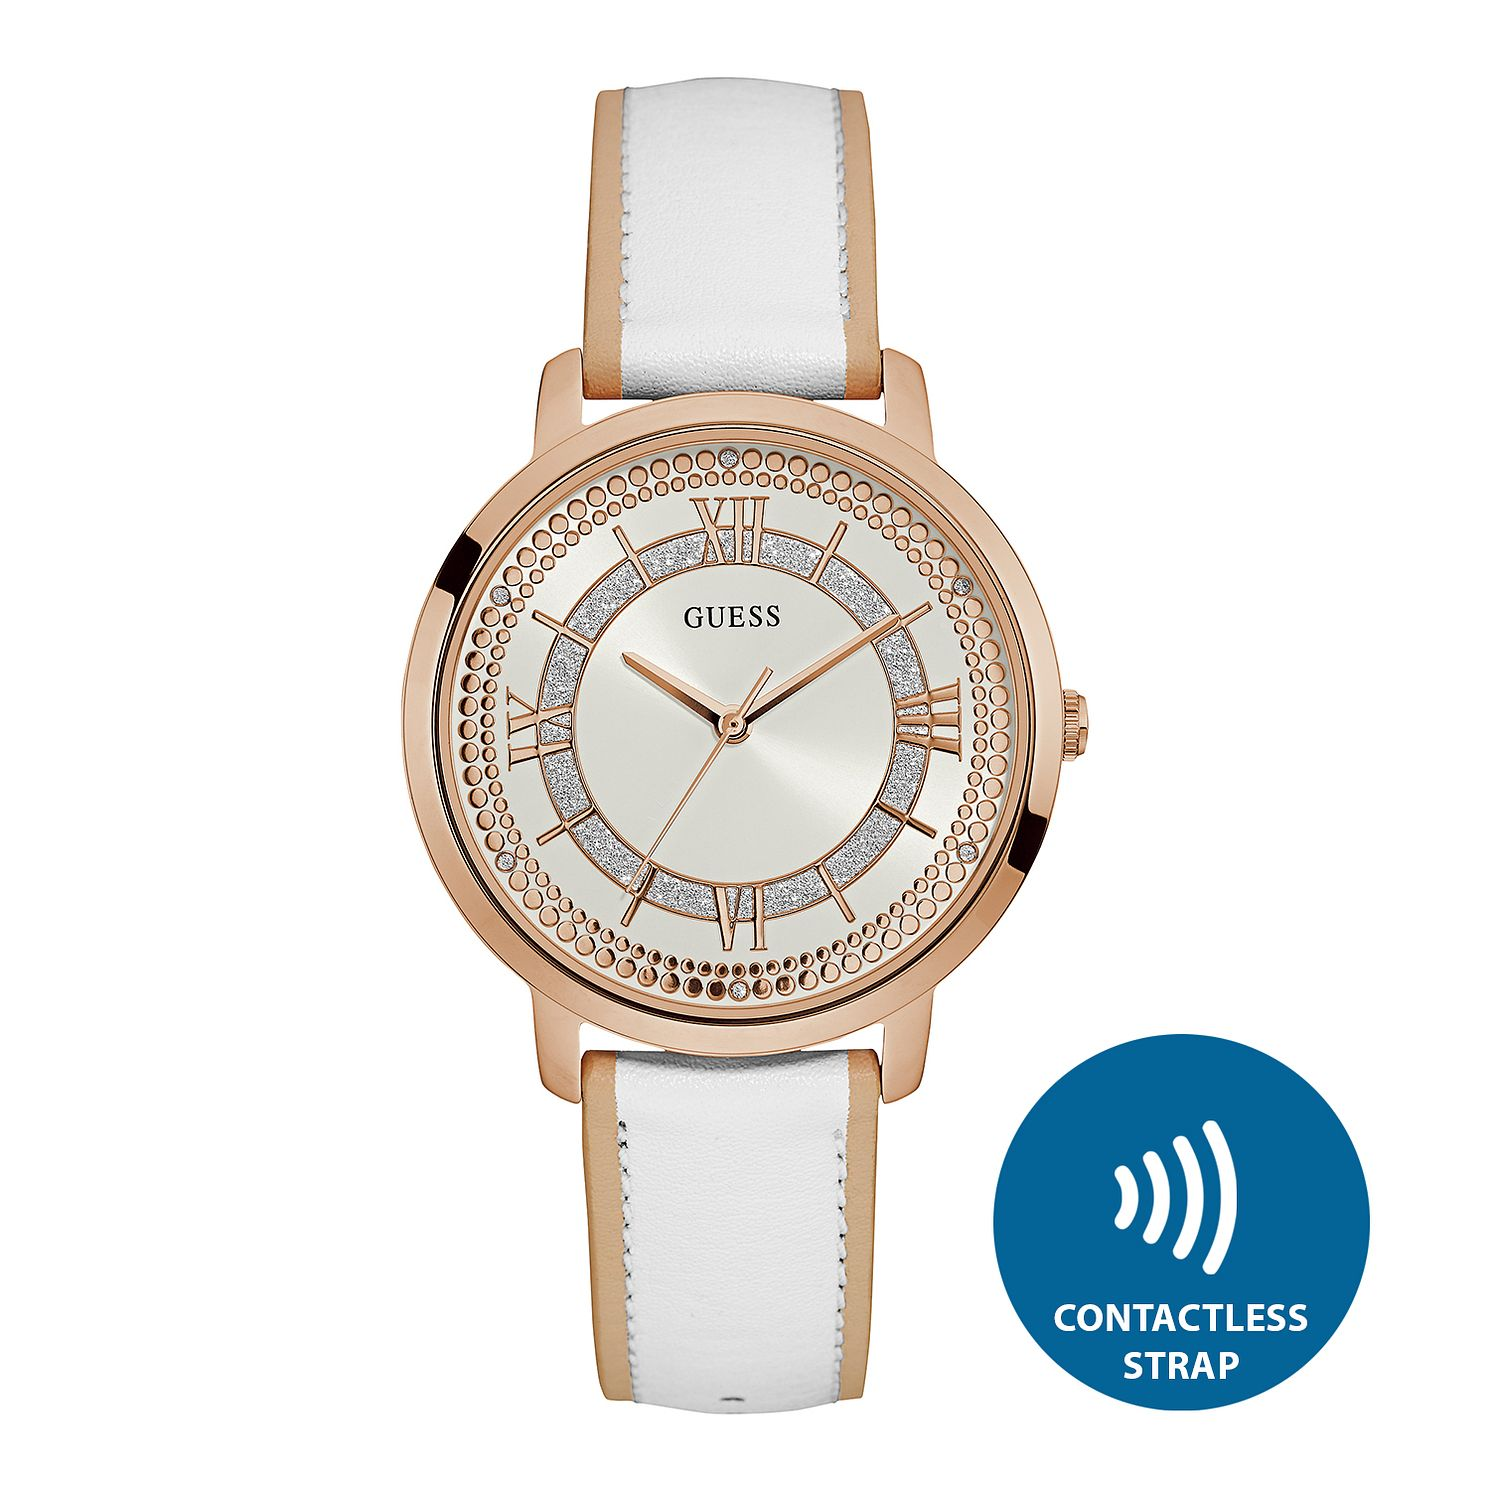 Guess Ladies' Contactless White Strap Watch - T&Cs apply - Product number 2633922